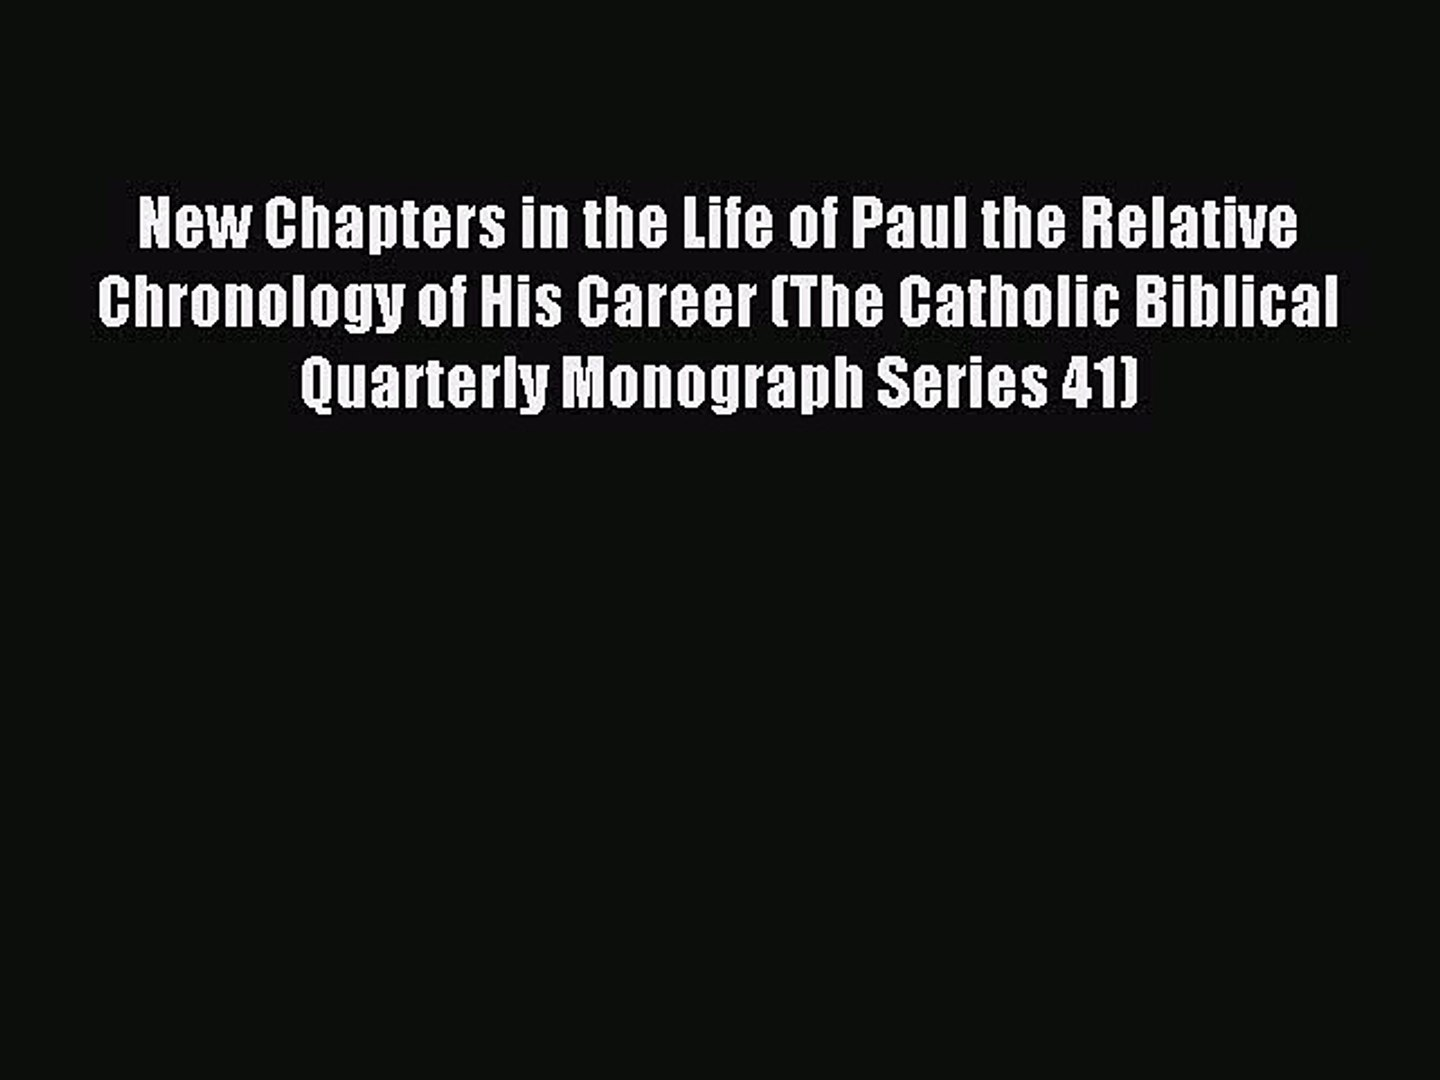 New Chapters in the Life of Paul: The Relative Chronology of His Career